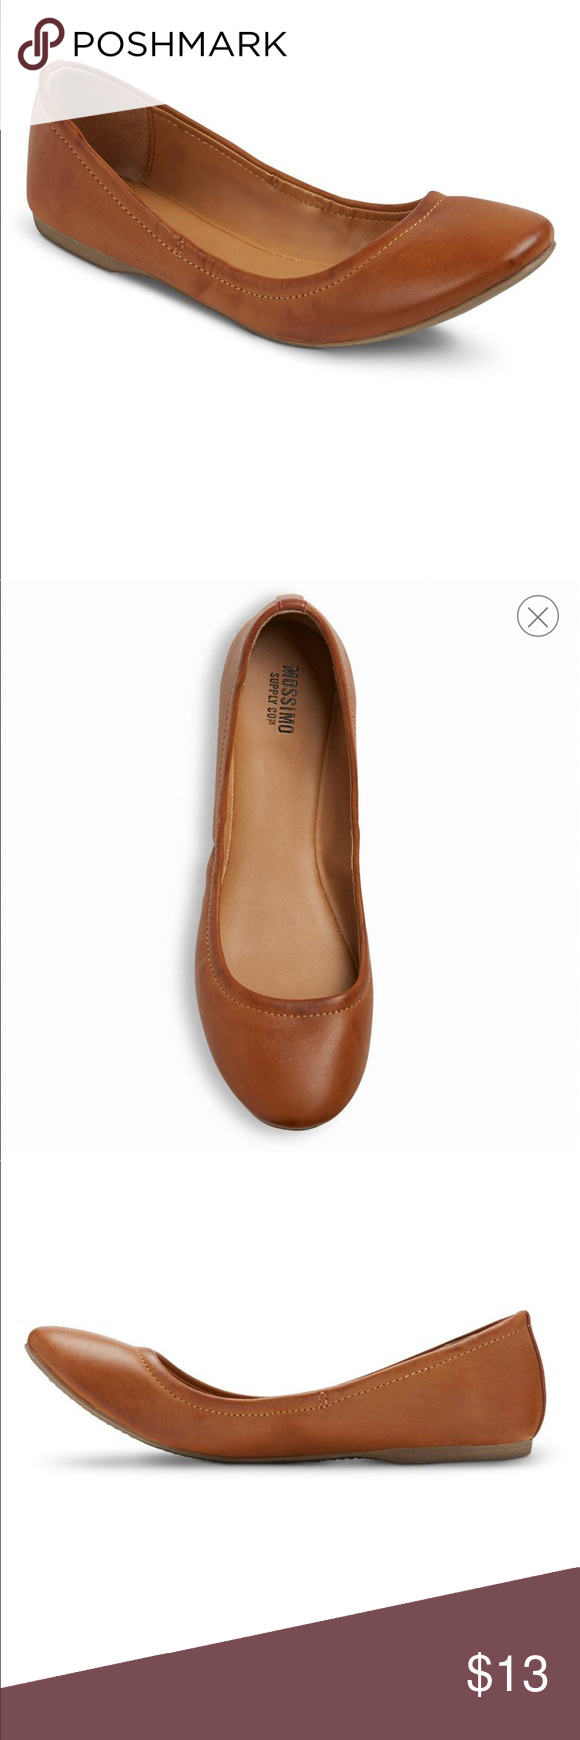 EUC MOSSIMO ONA SCRUNCH BALLET FLAT COGNAC sz 9.5 EUC MOSSIMO SCRUNCH BALLET FLAT IN COGNAC sz 9.5. Round-toed ballet flat, Luxe faux leather upper, Convenient slip-on styling, Cushioned insole, durable outsole Mossimo Supply Co. Shoes Flats & Loafers